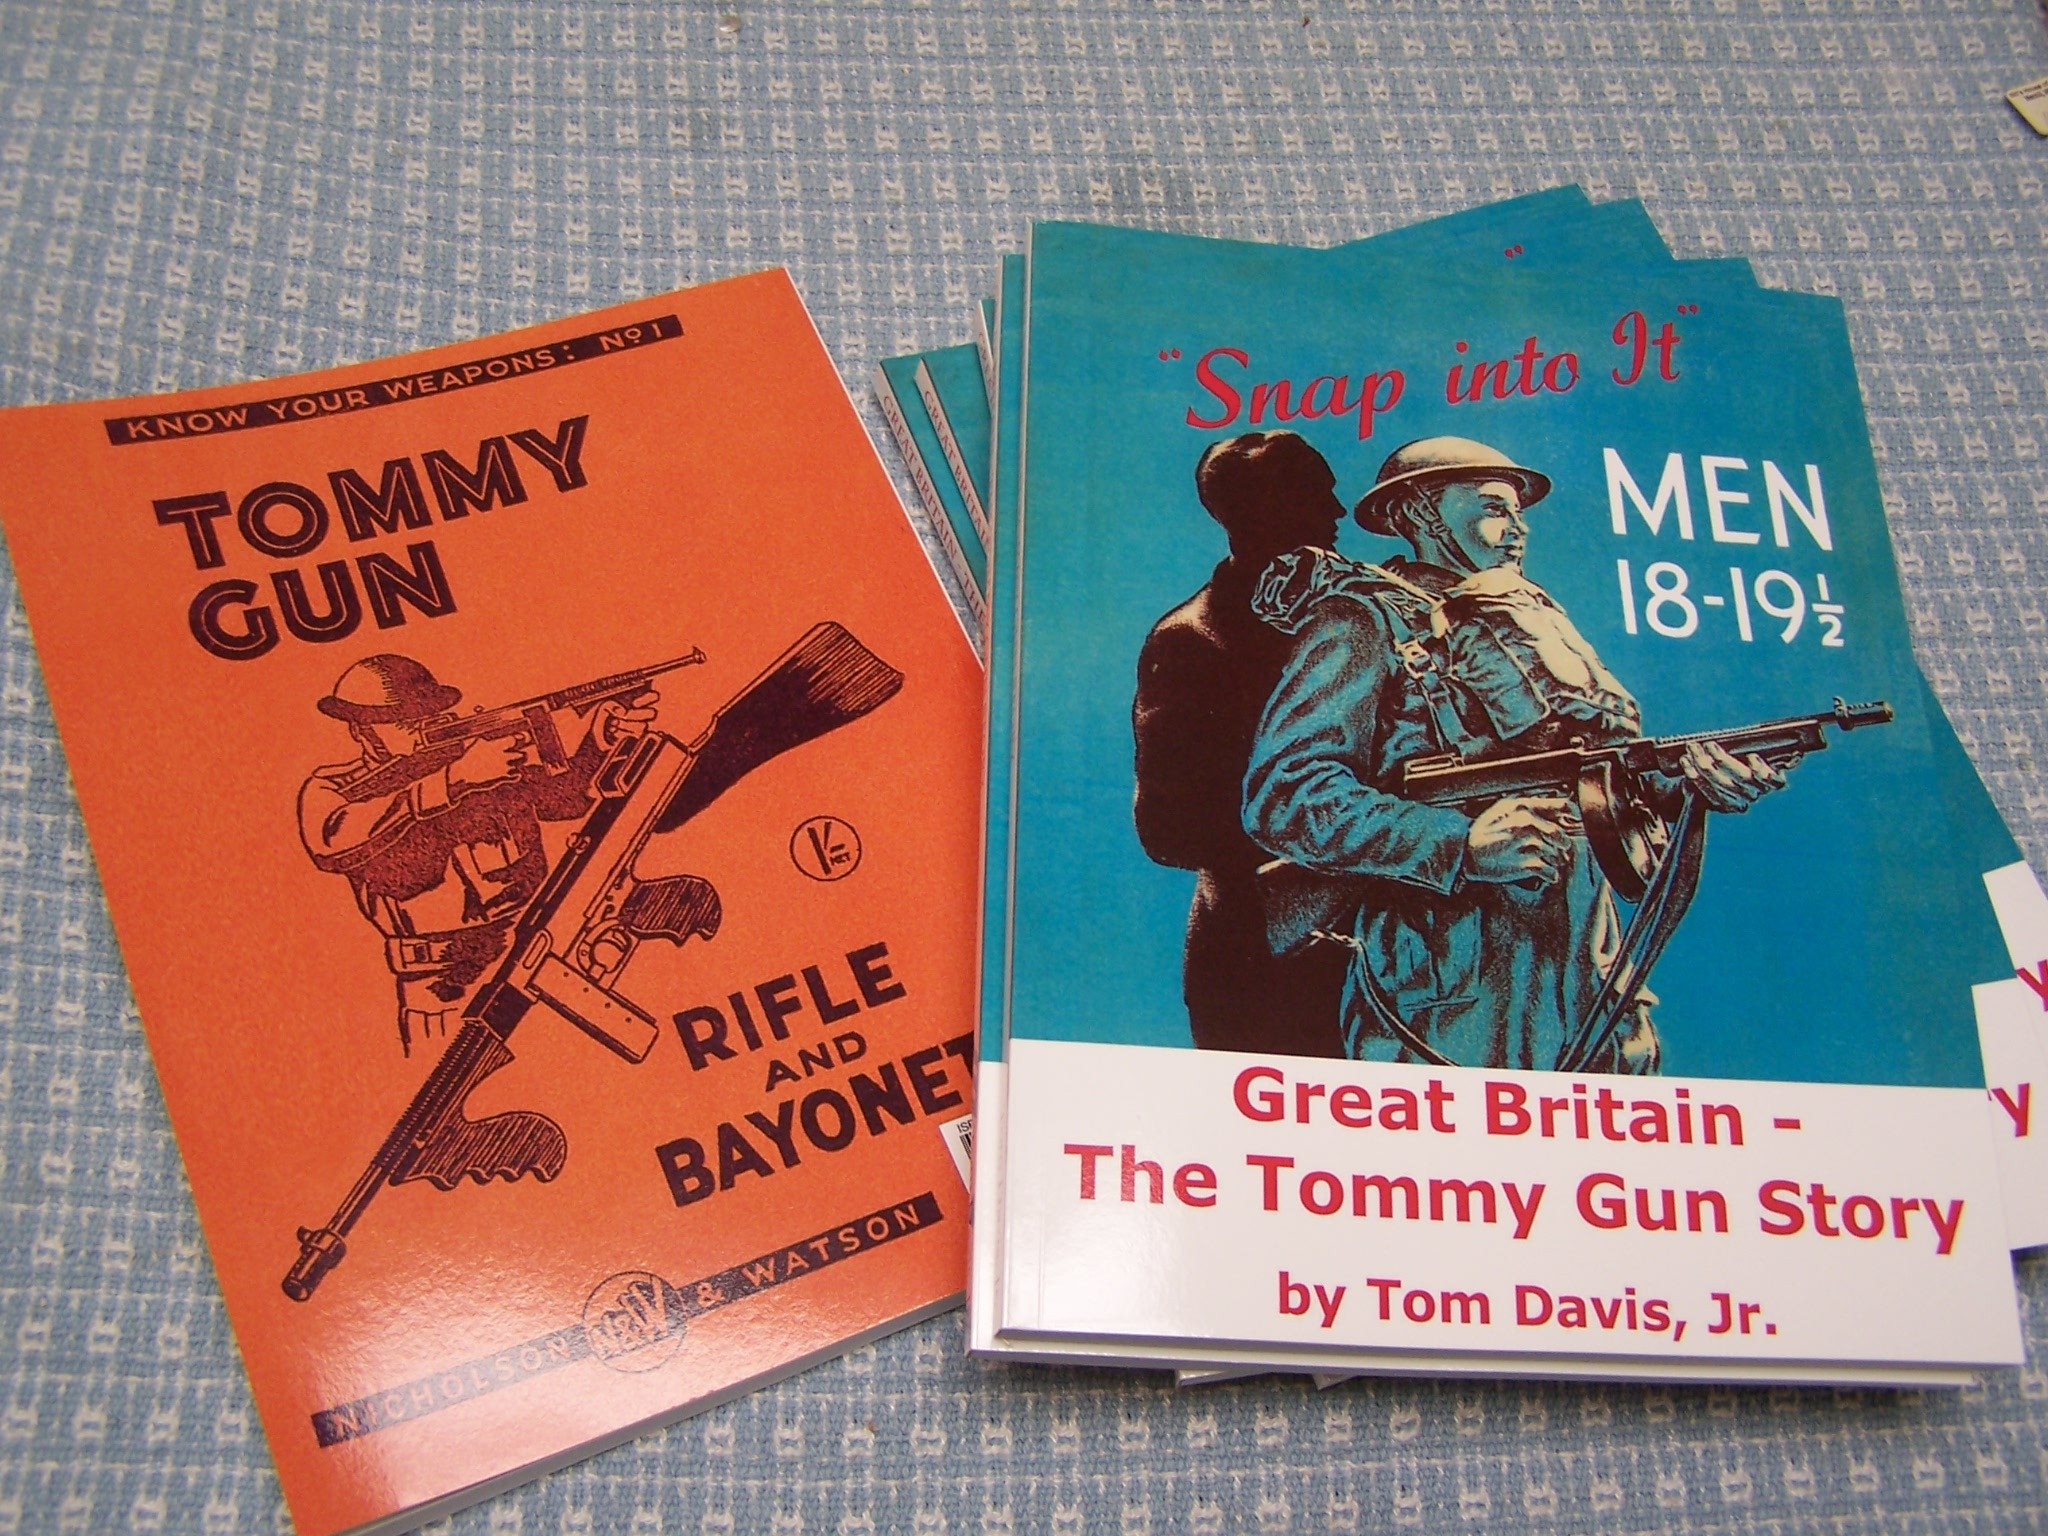 GREAT BRITAIN-THE TOMMY GUN STORY BY TOM DAVIS, JR.